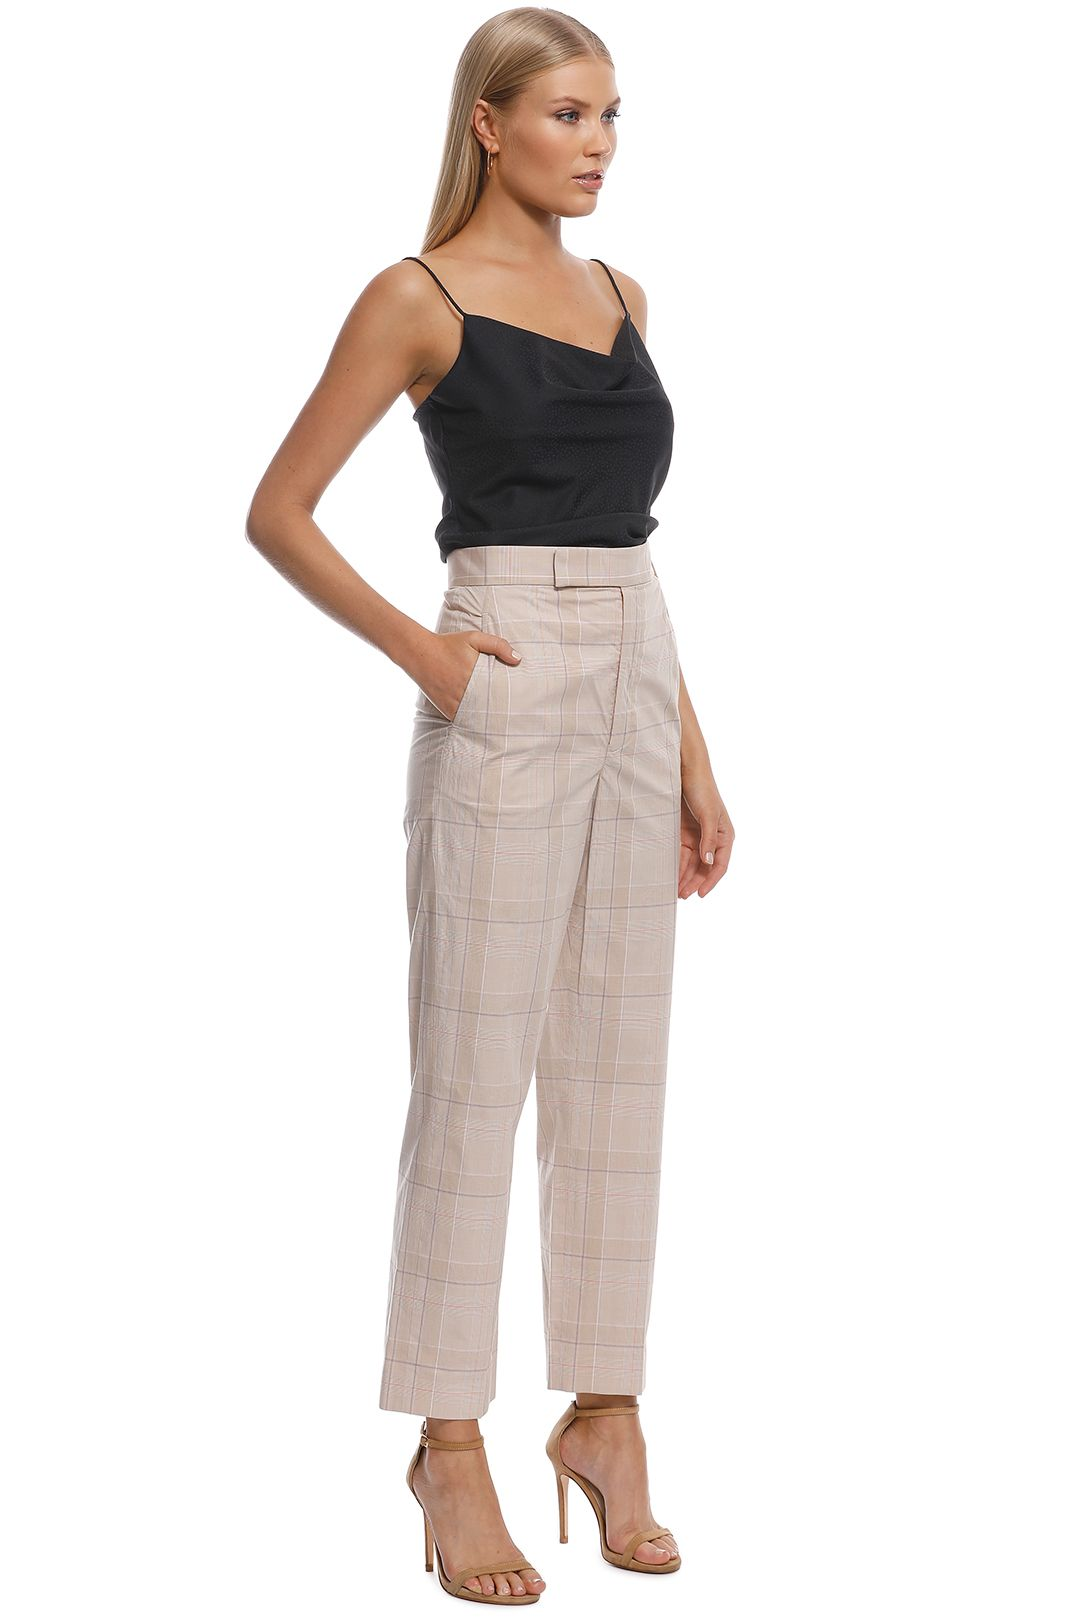 Scanlan Theodore - Check Slim Fit Trouser - Frappe - Side